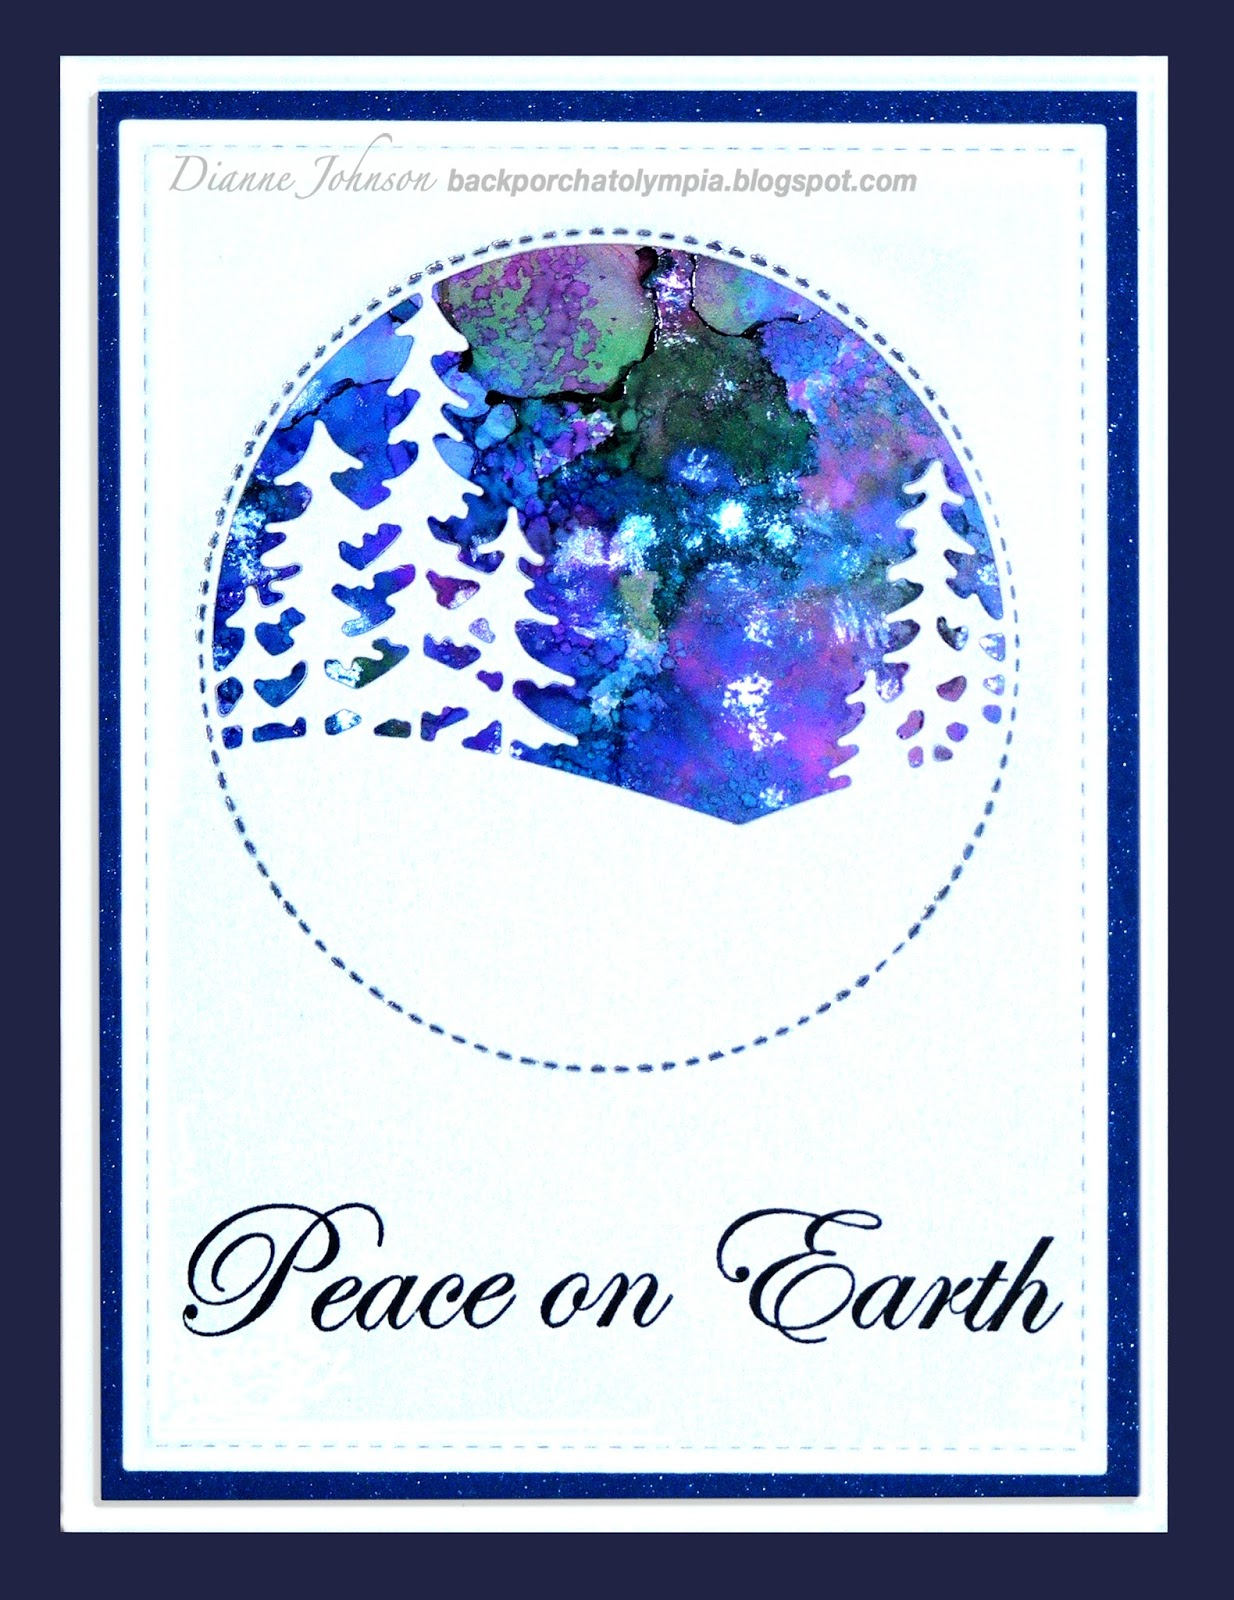 NEW D14458 Wood Mounted Stamp IMPRESSION OBSESSION Joyful Christmas Text